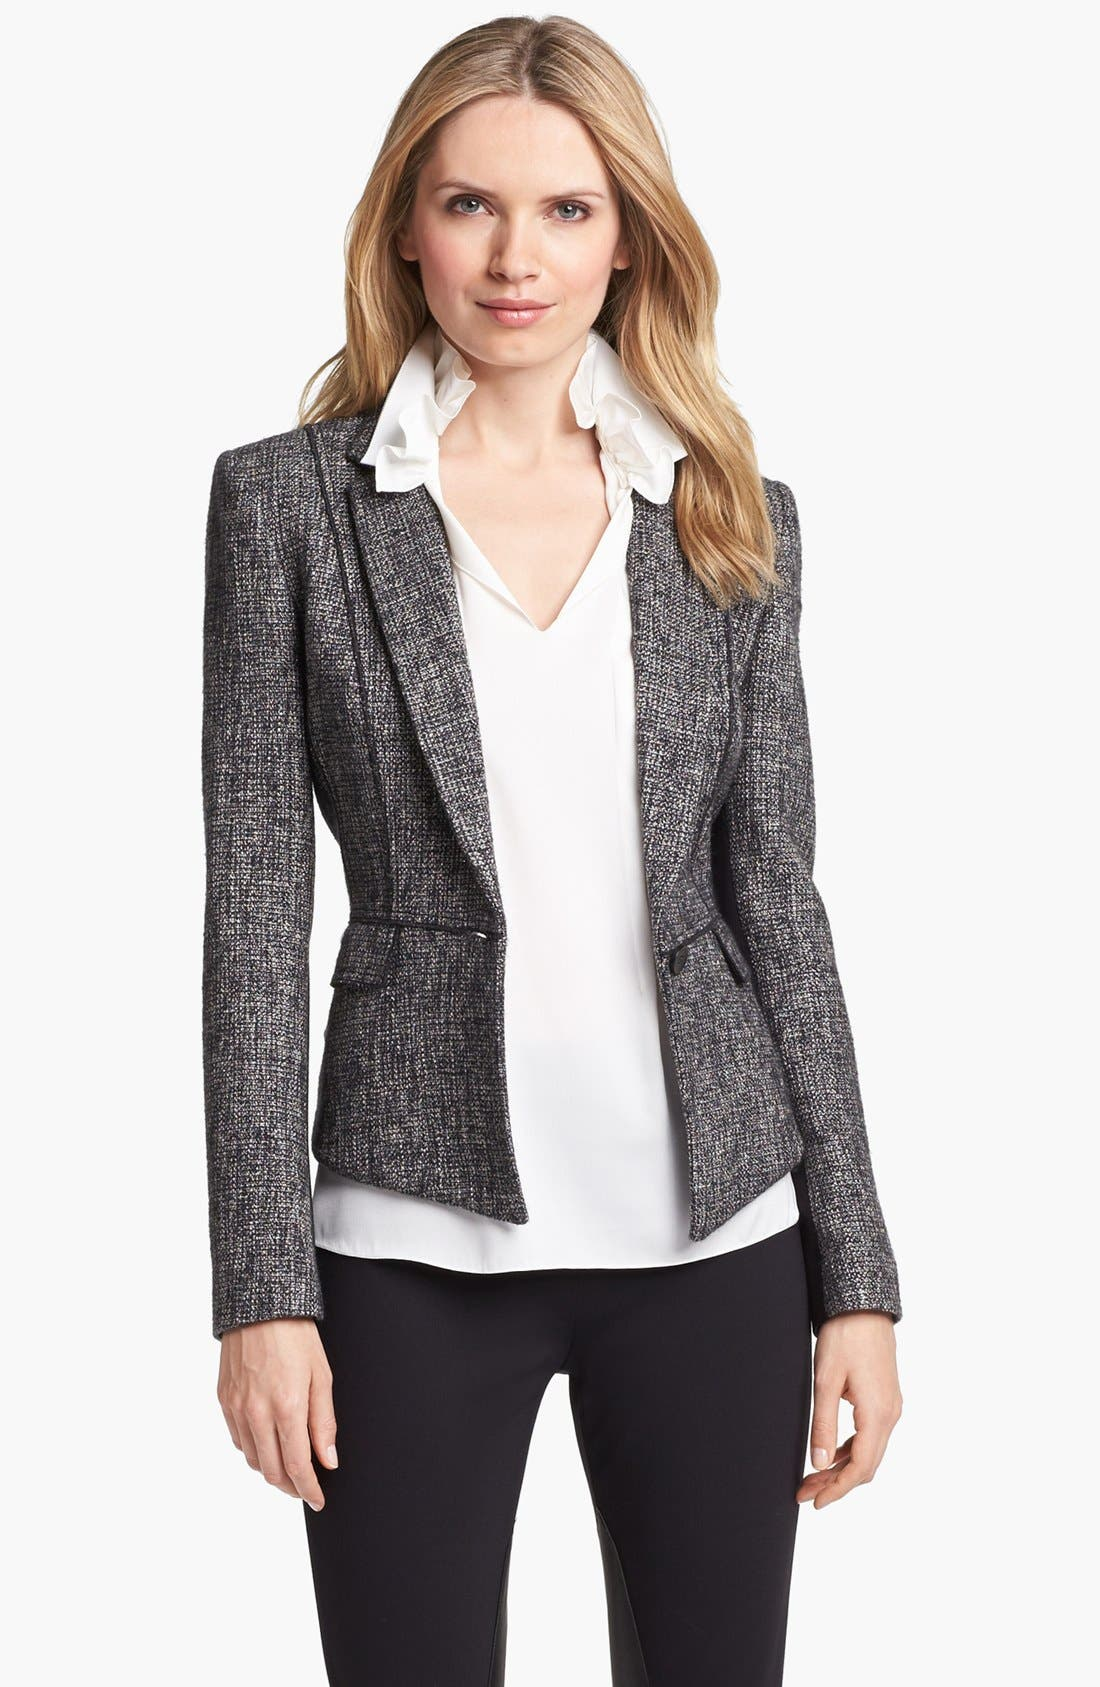 Alternate Image 1 Selected - Elie Tahari 'Minka' Metallic Tweed Jacket